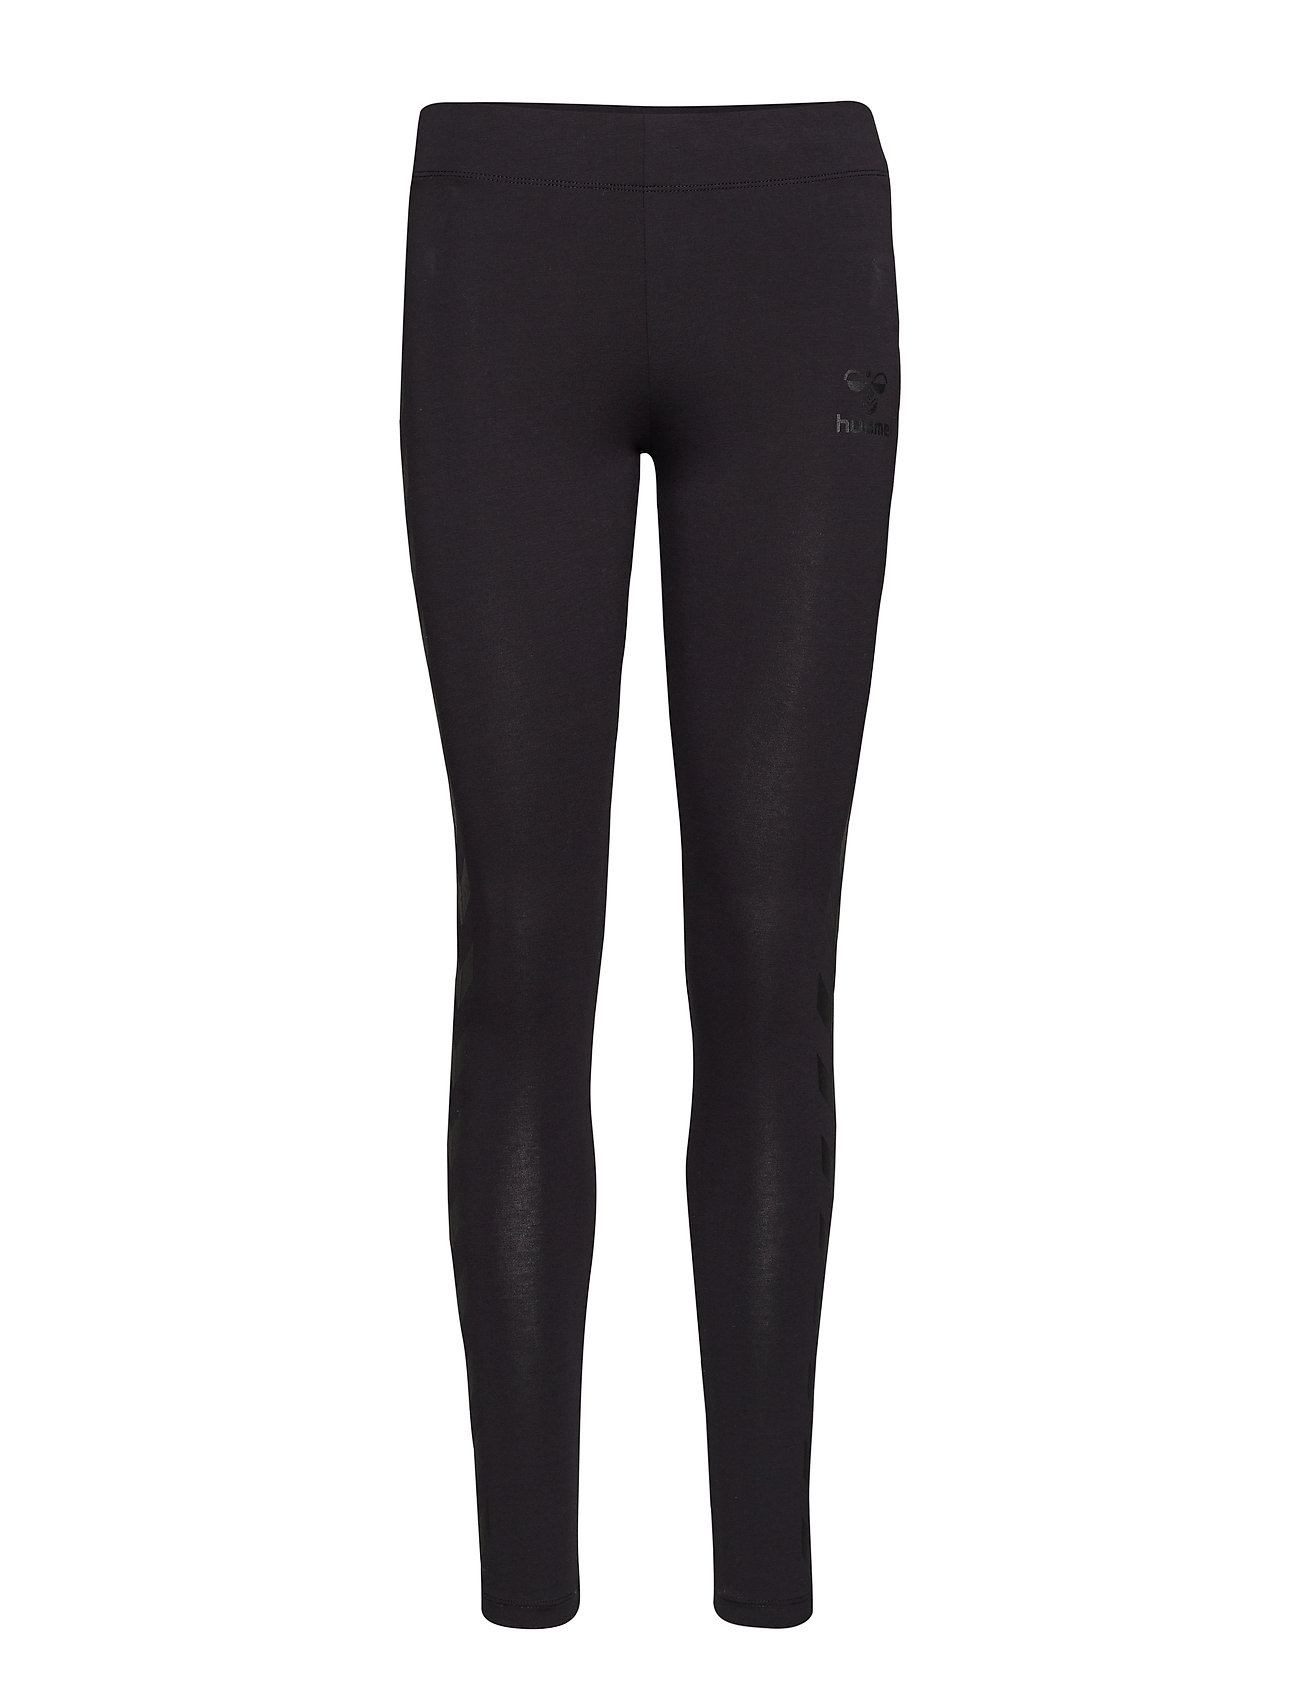 Hummel HMLTAYLOR TIGHTS - BLACK